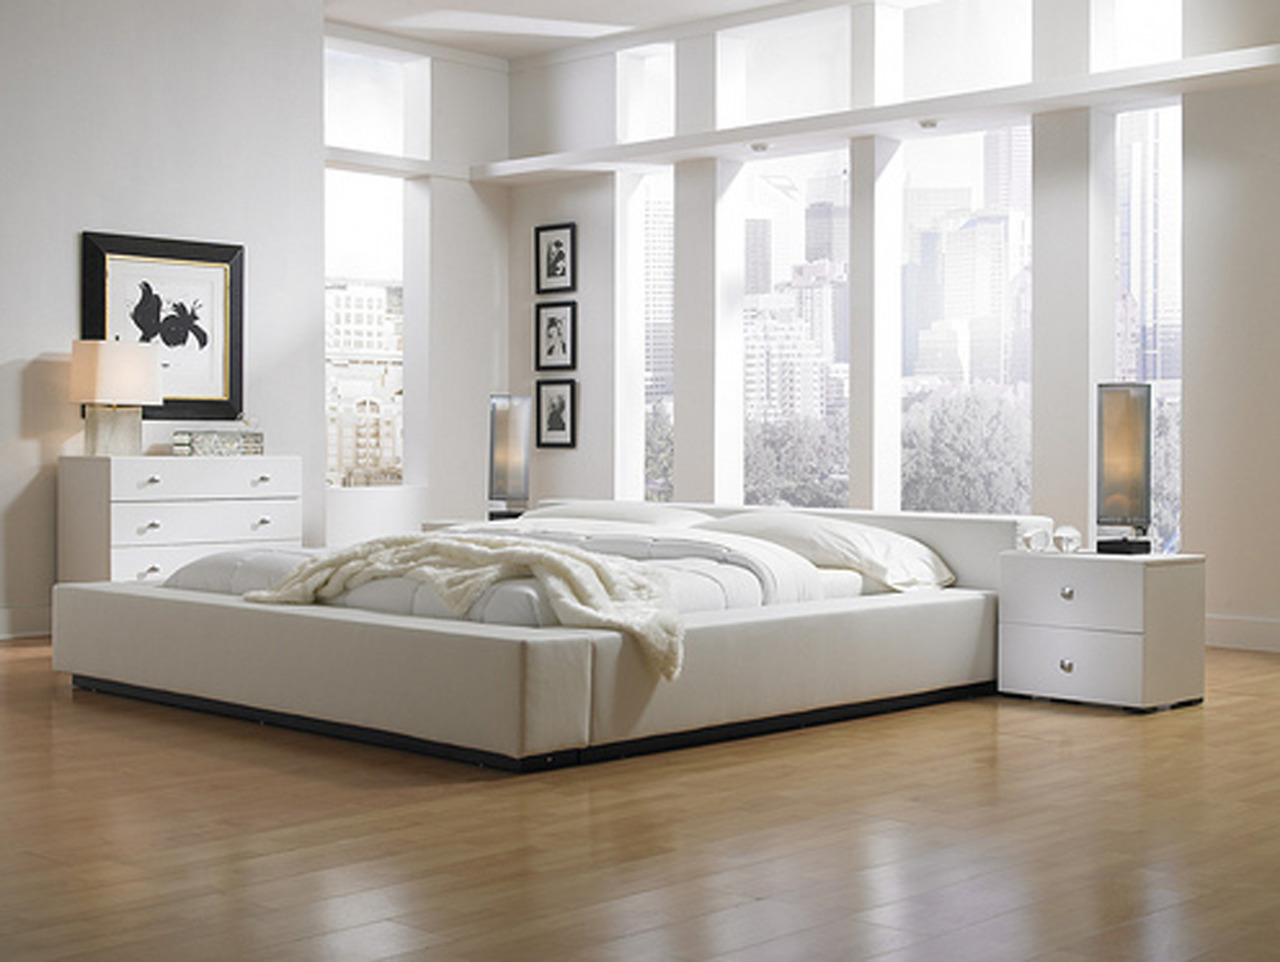 v-anillablossom:  vanillaocean:  q'd!  my future bedroom <3